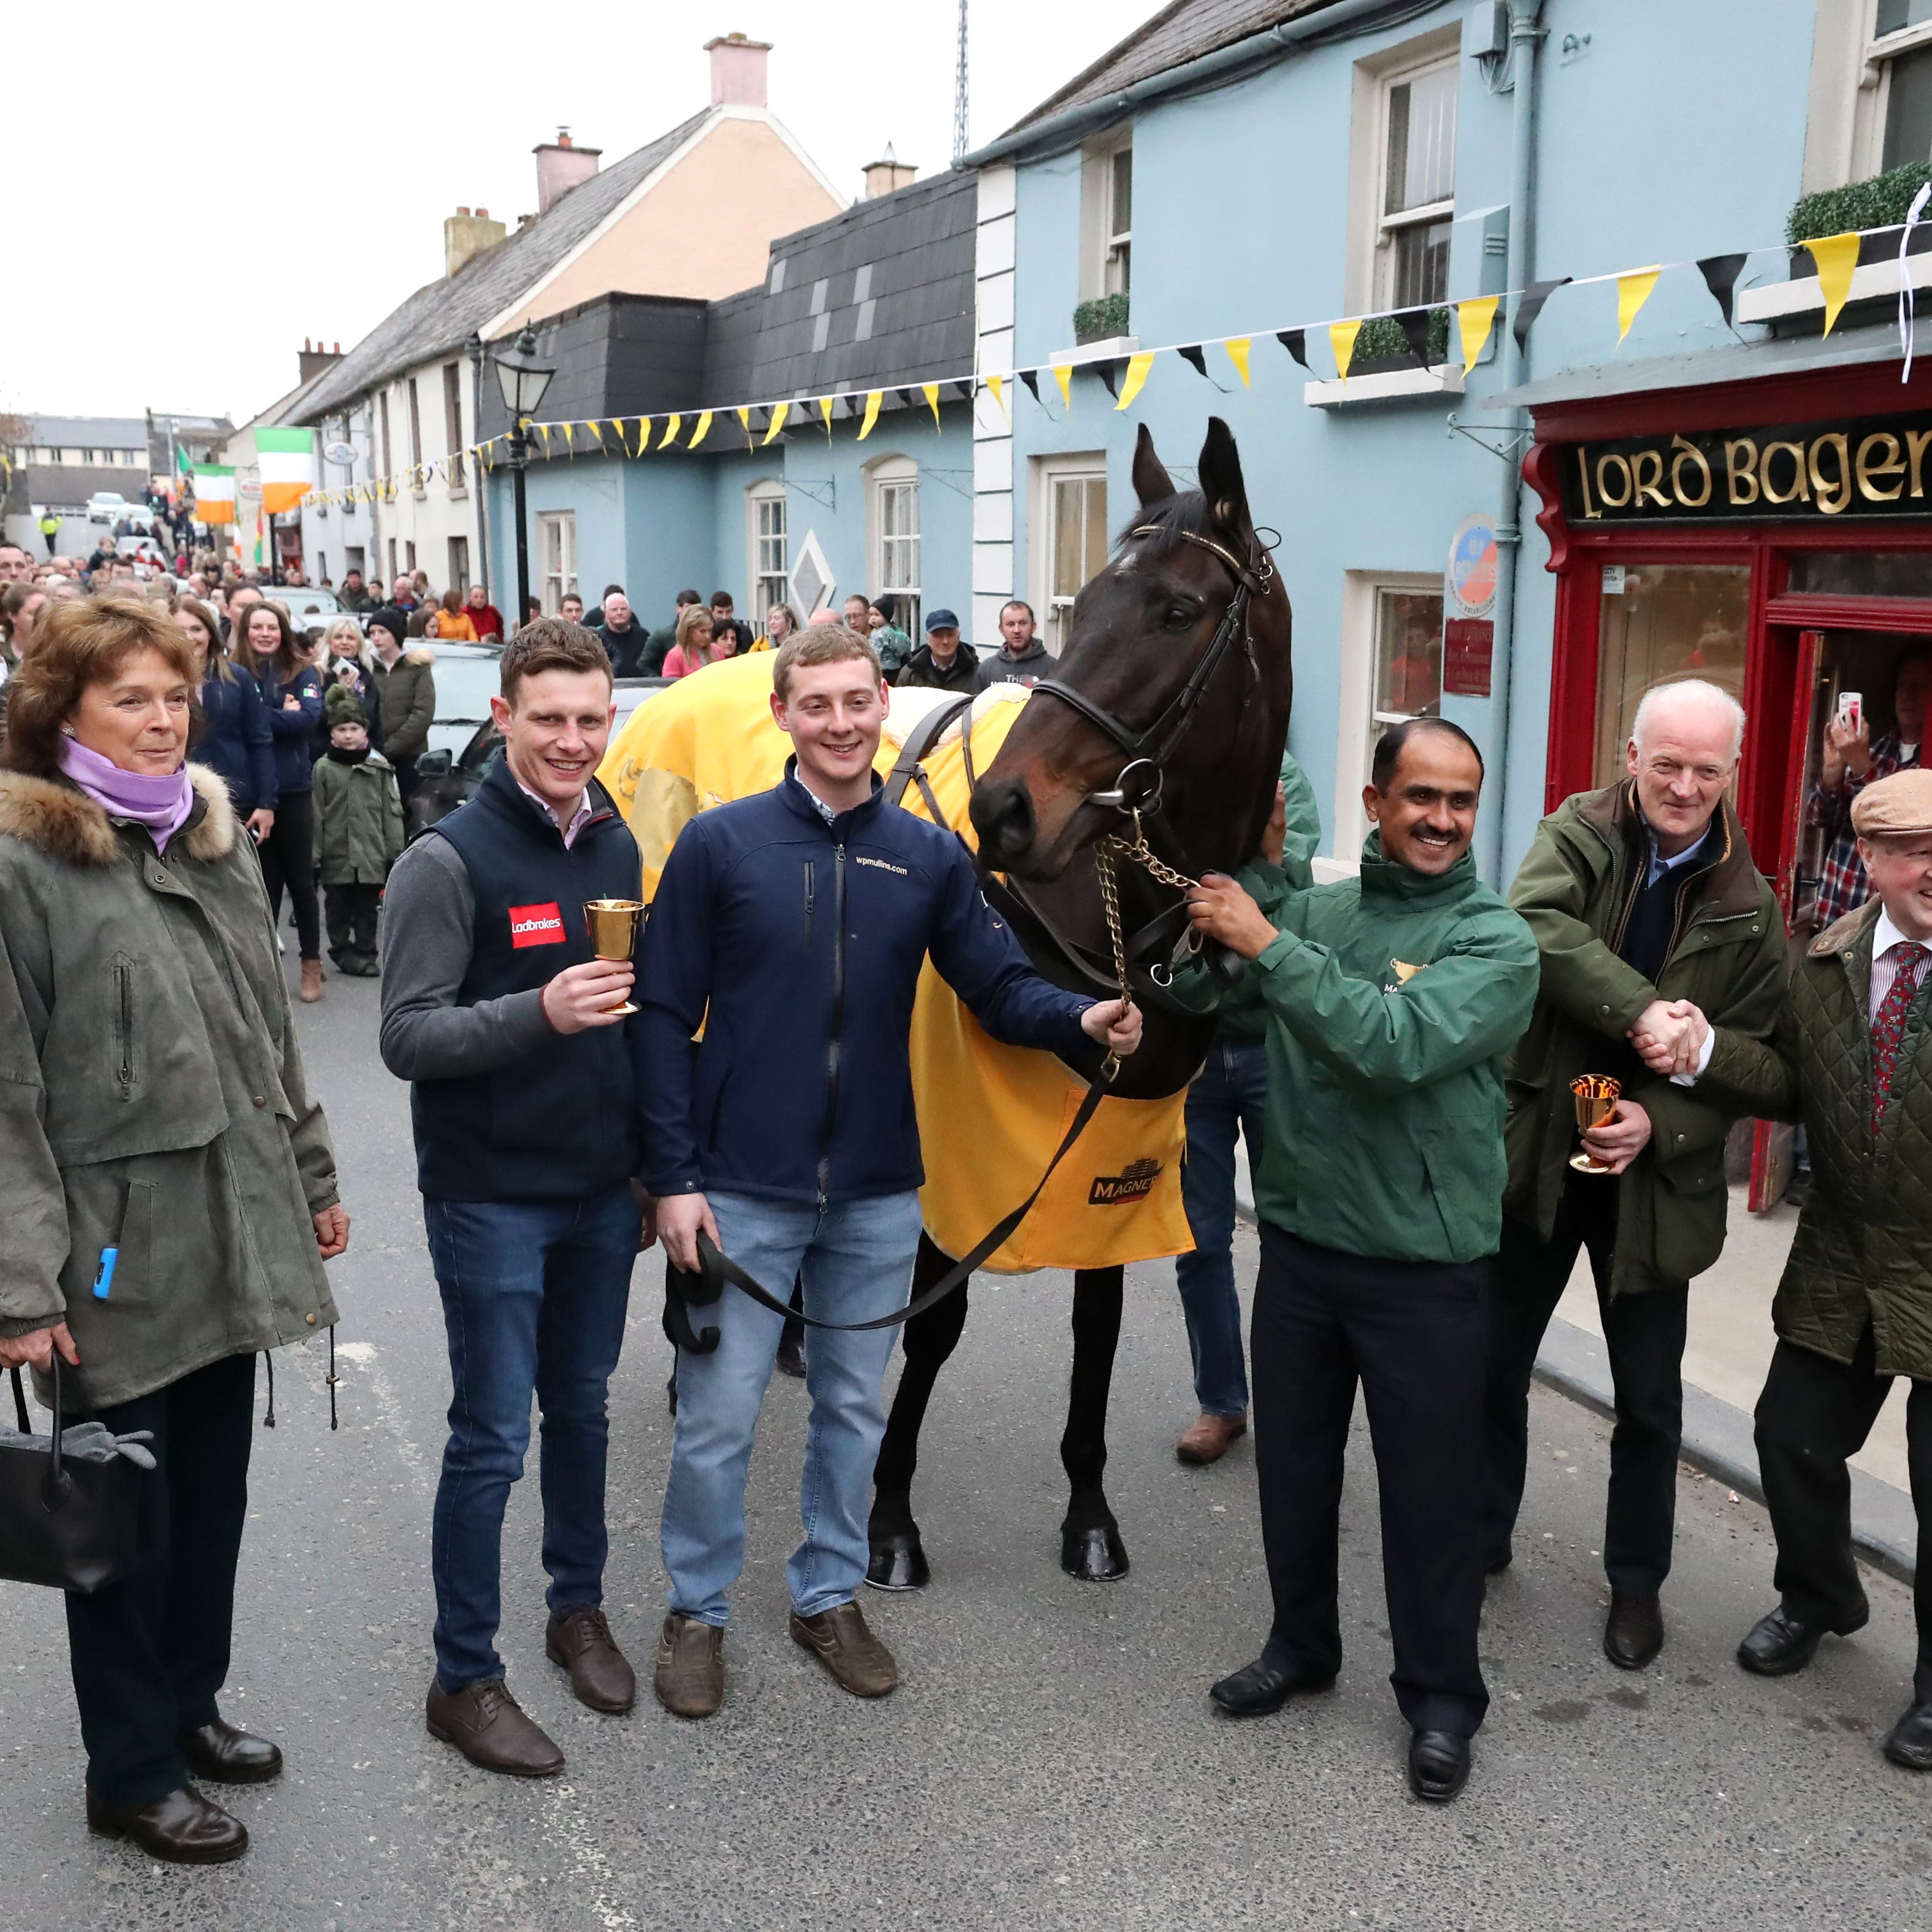 Cheltenham Gold Cup winner Al Boum Photo with jockey Paul Townend (second left) and trainer Willie Mullins (second right) during the homecoming parade through Leighlinbridge, County Carlow